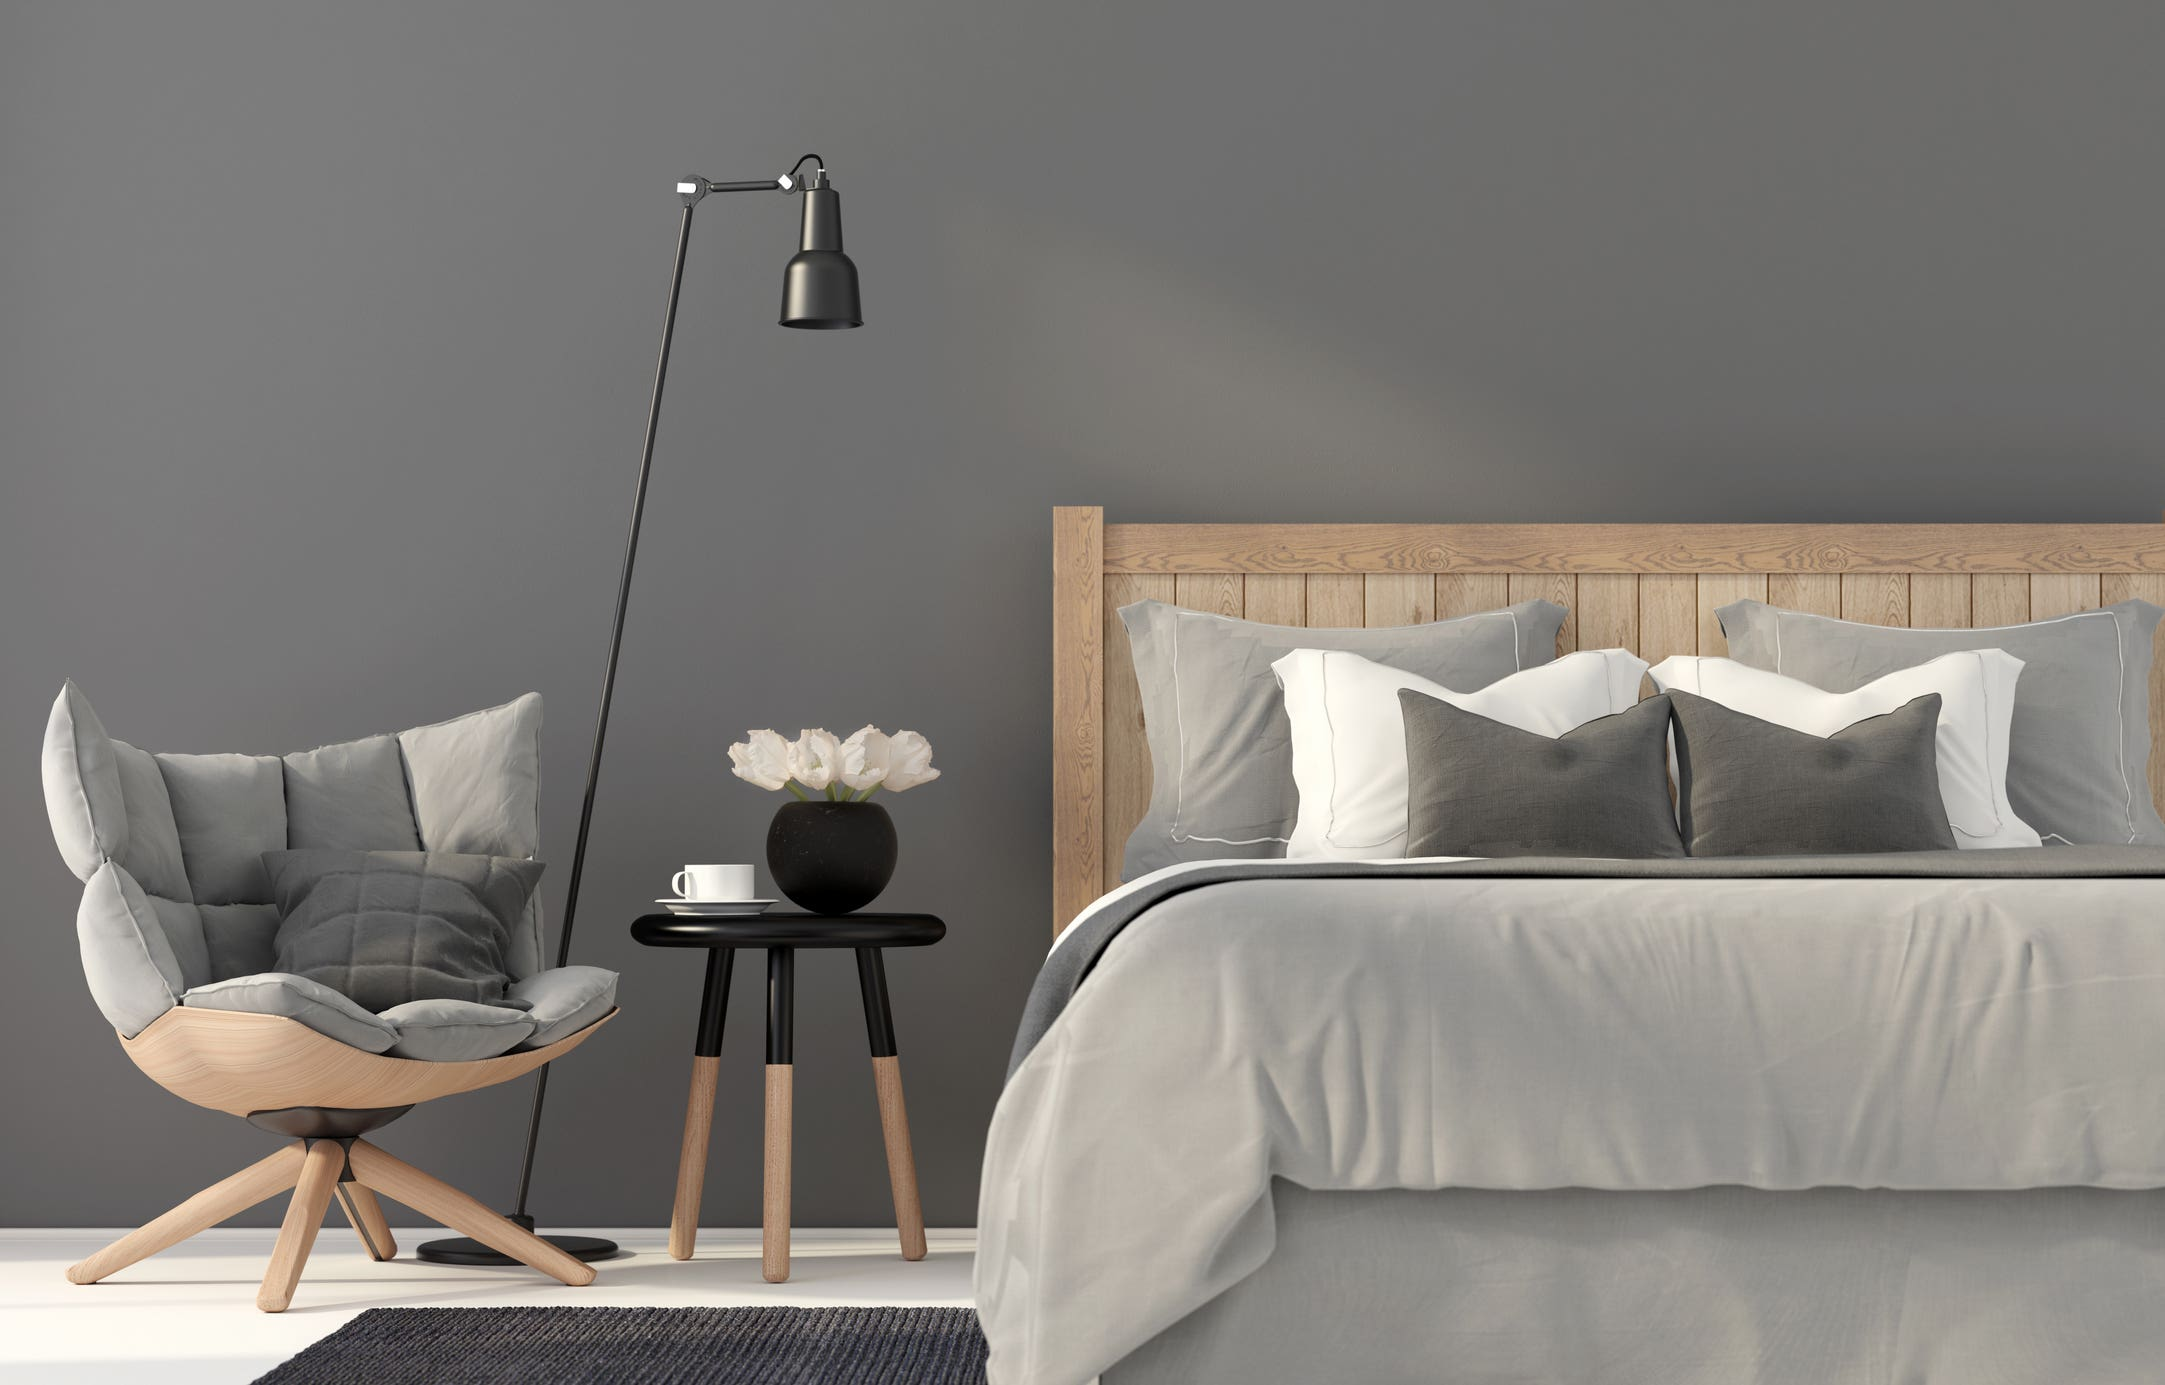 Creating a Cozy Sitting Area in Your Bedroom